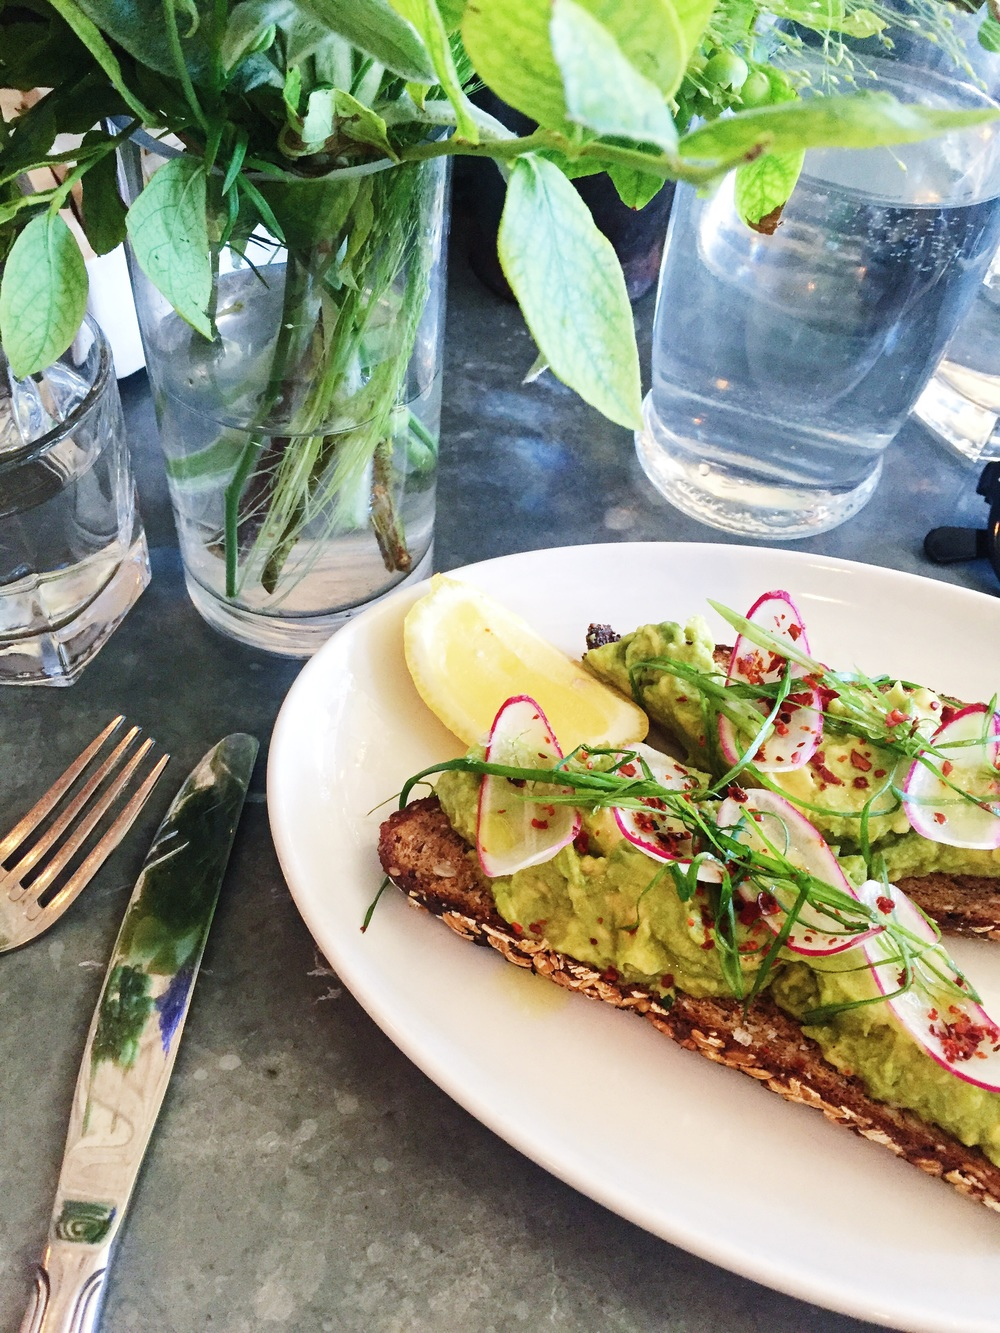 AVOCADO TOAST FROM FIVE LEAVES: 9/10